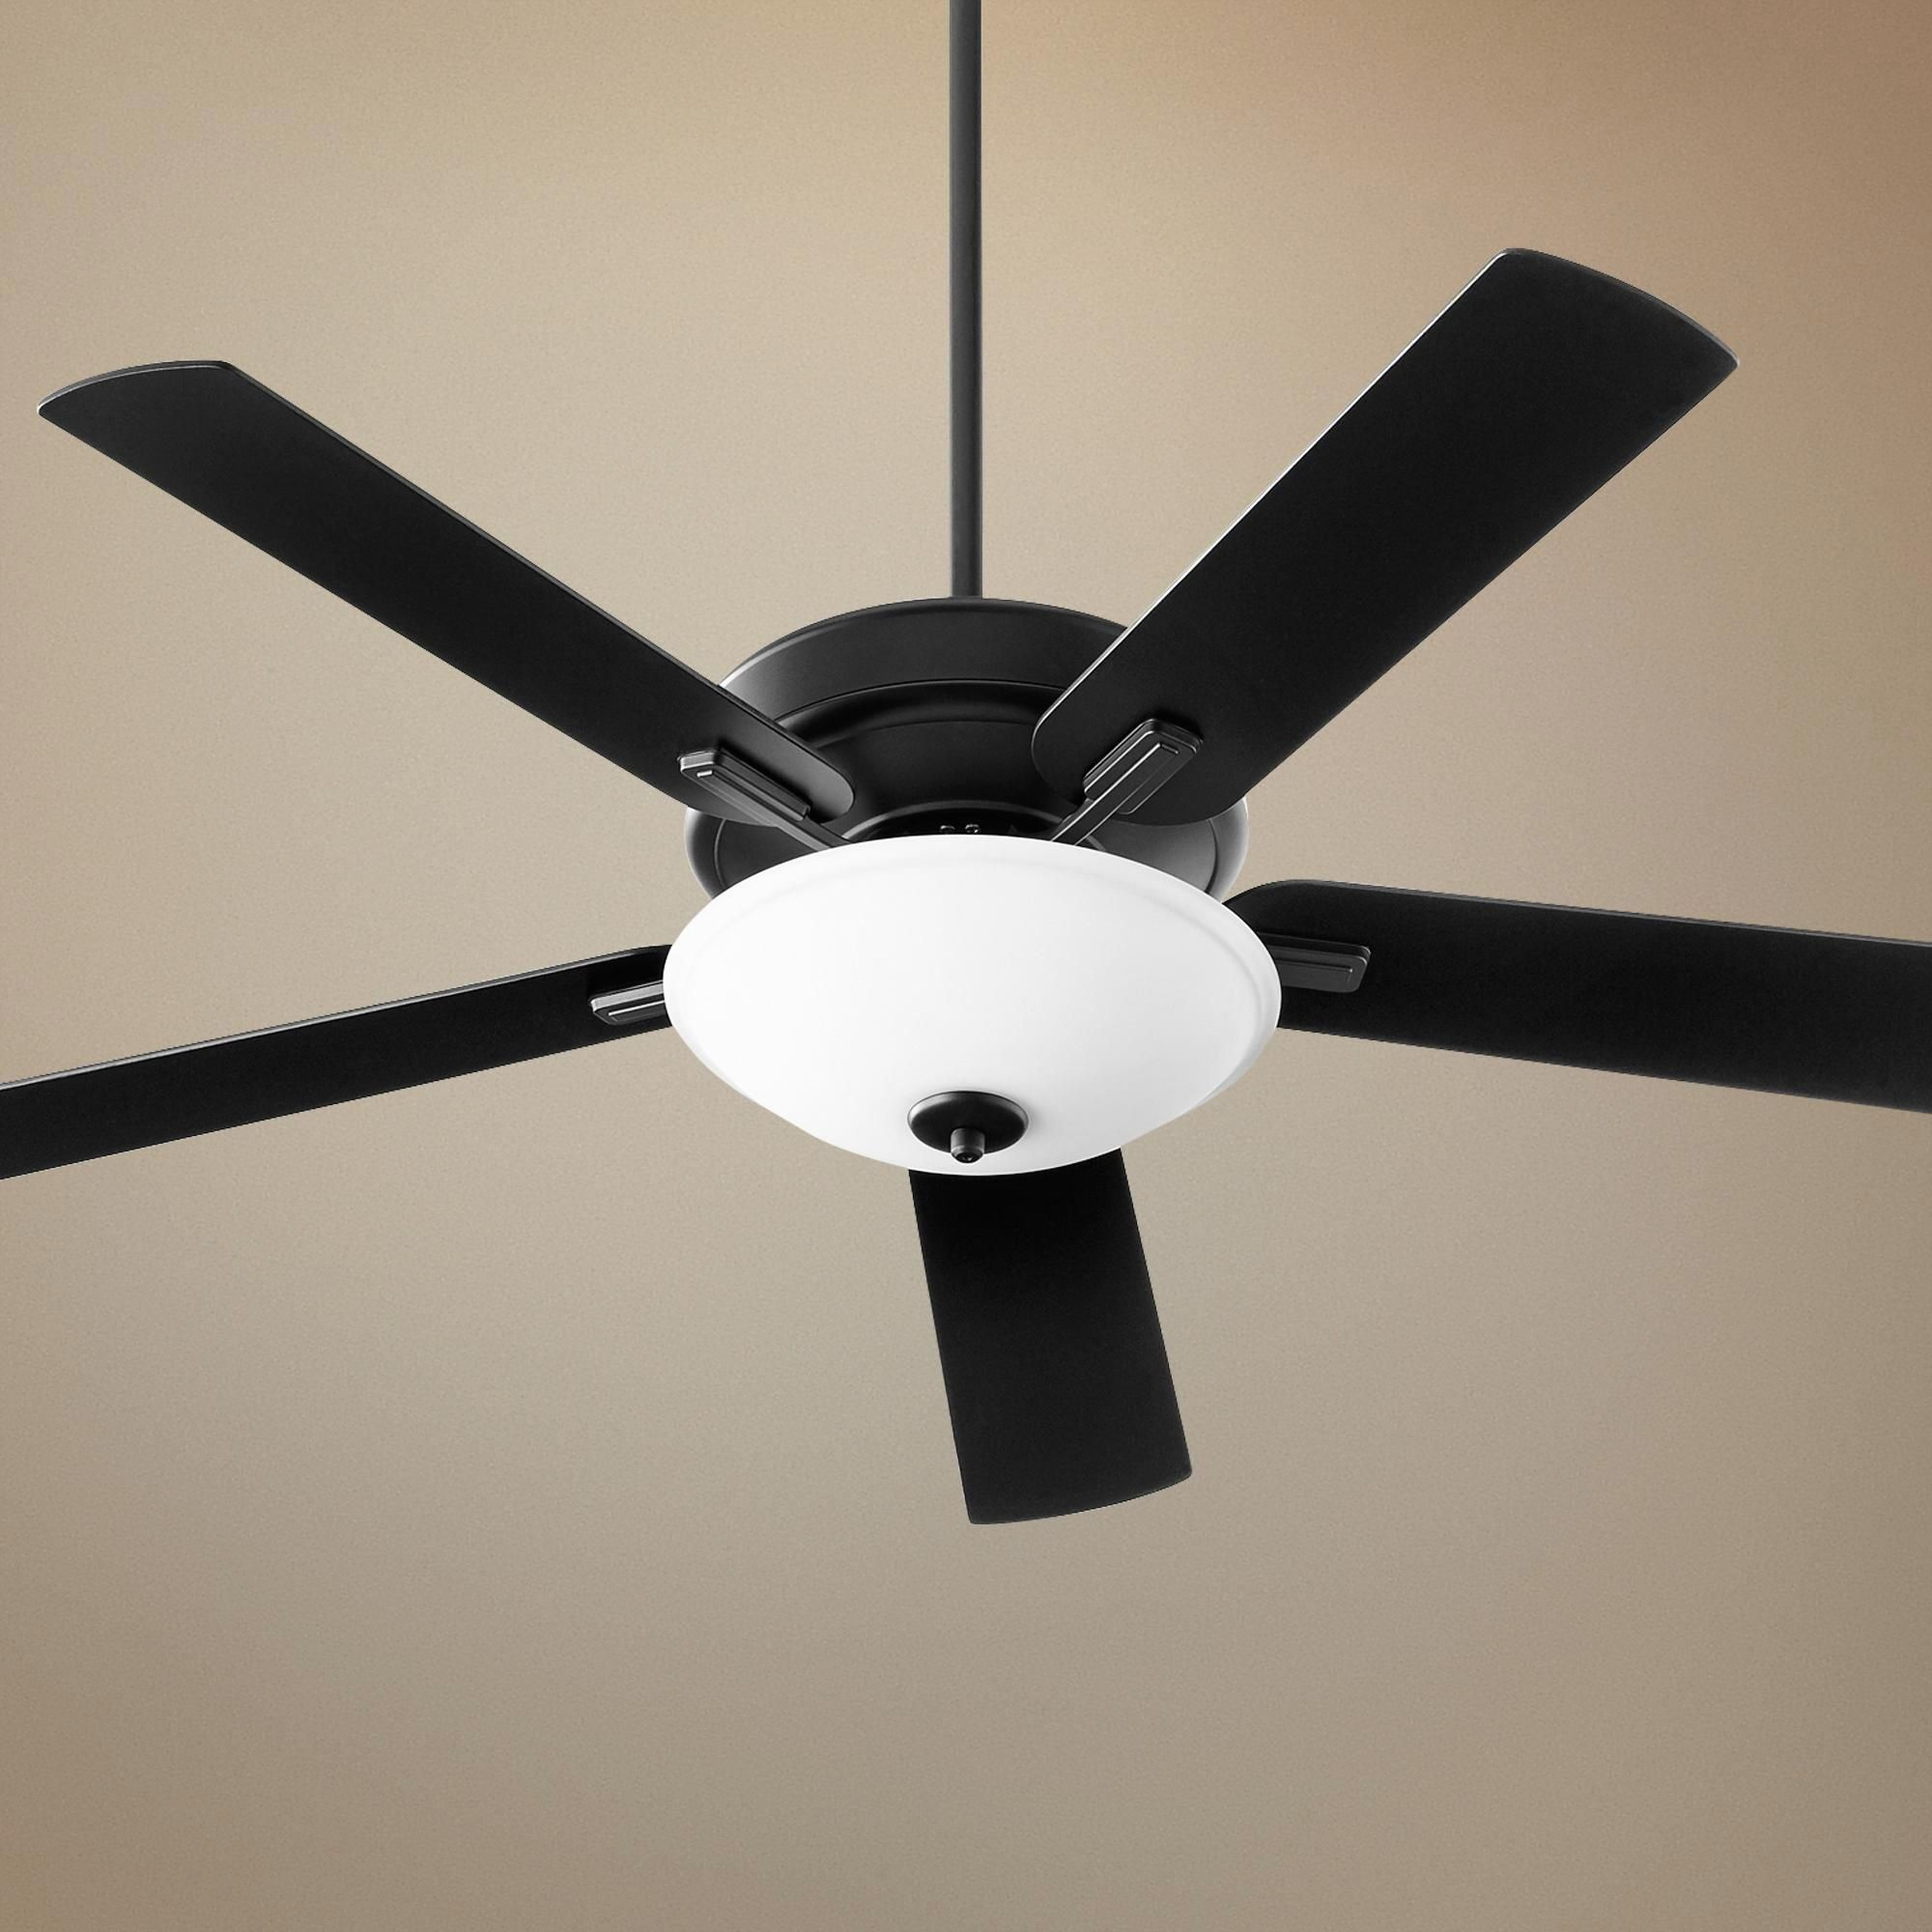 52 Inch Quorum Premier Noir Led Ceiling Fan 1000 In 2020 Led Ceiling Fan Ceiling Fan Ceiling Fan Makeover